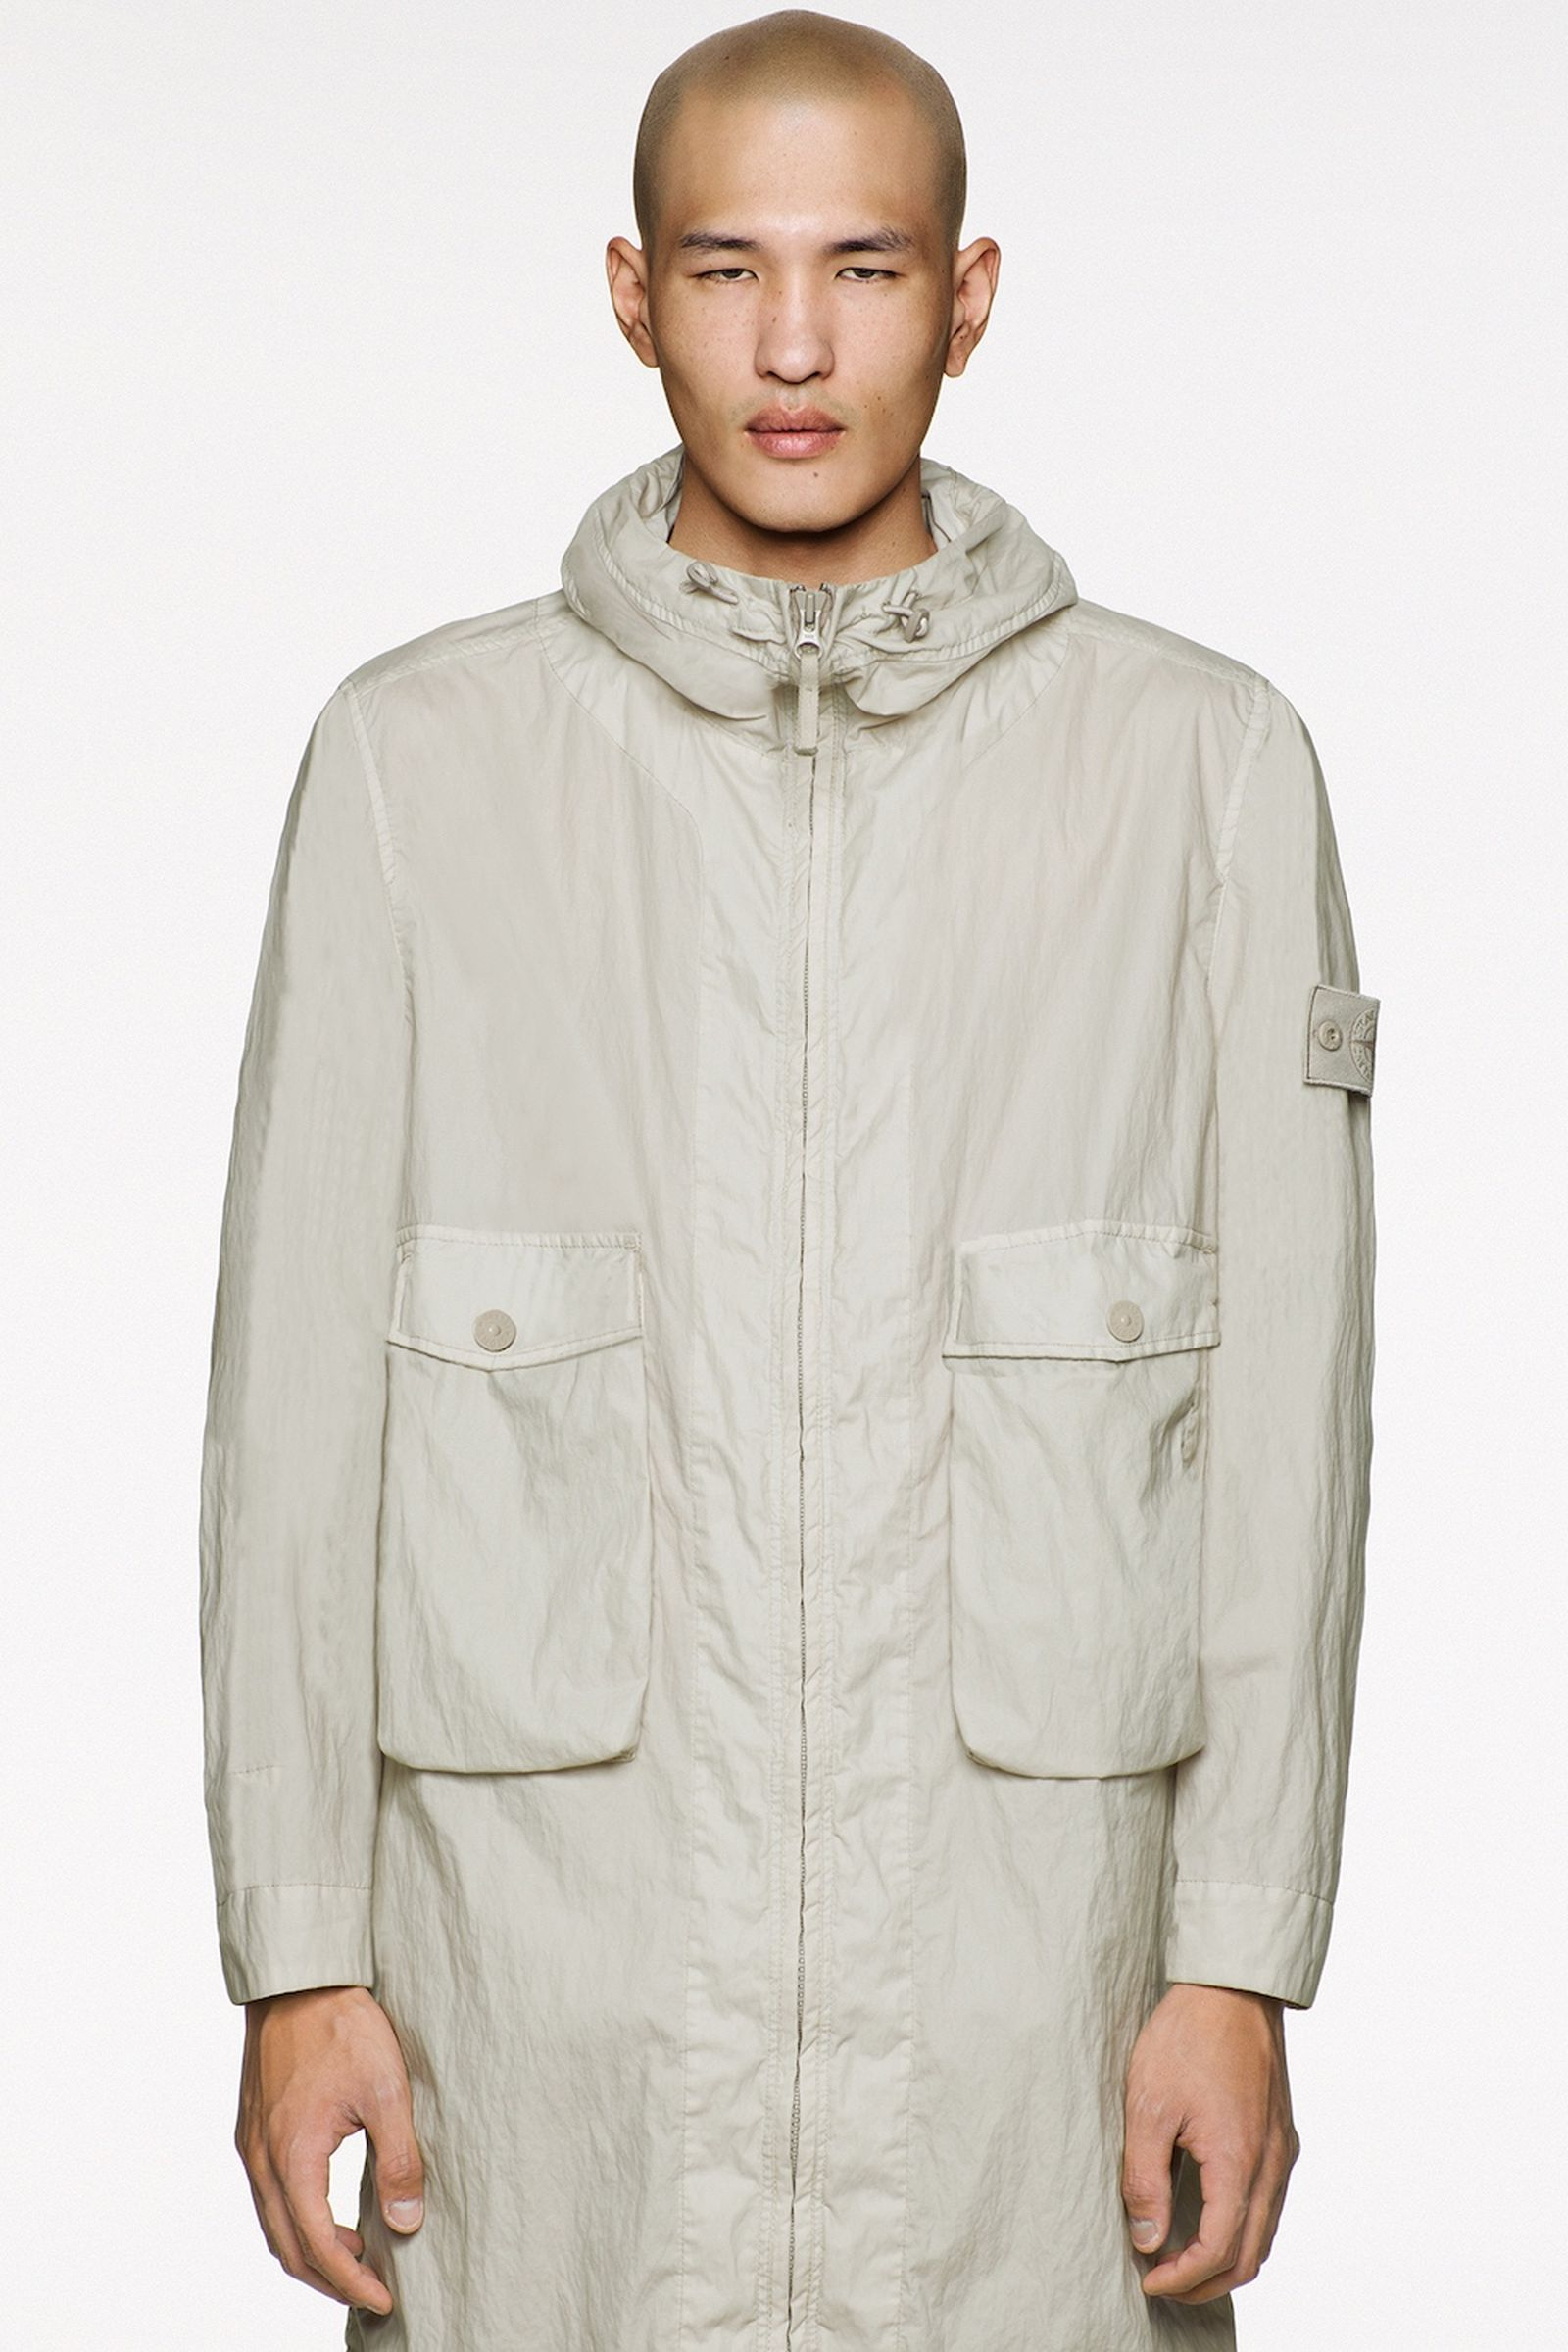 stone island ss19 ghost pieces